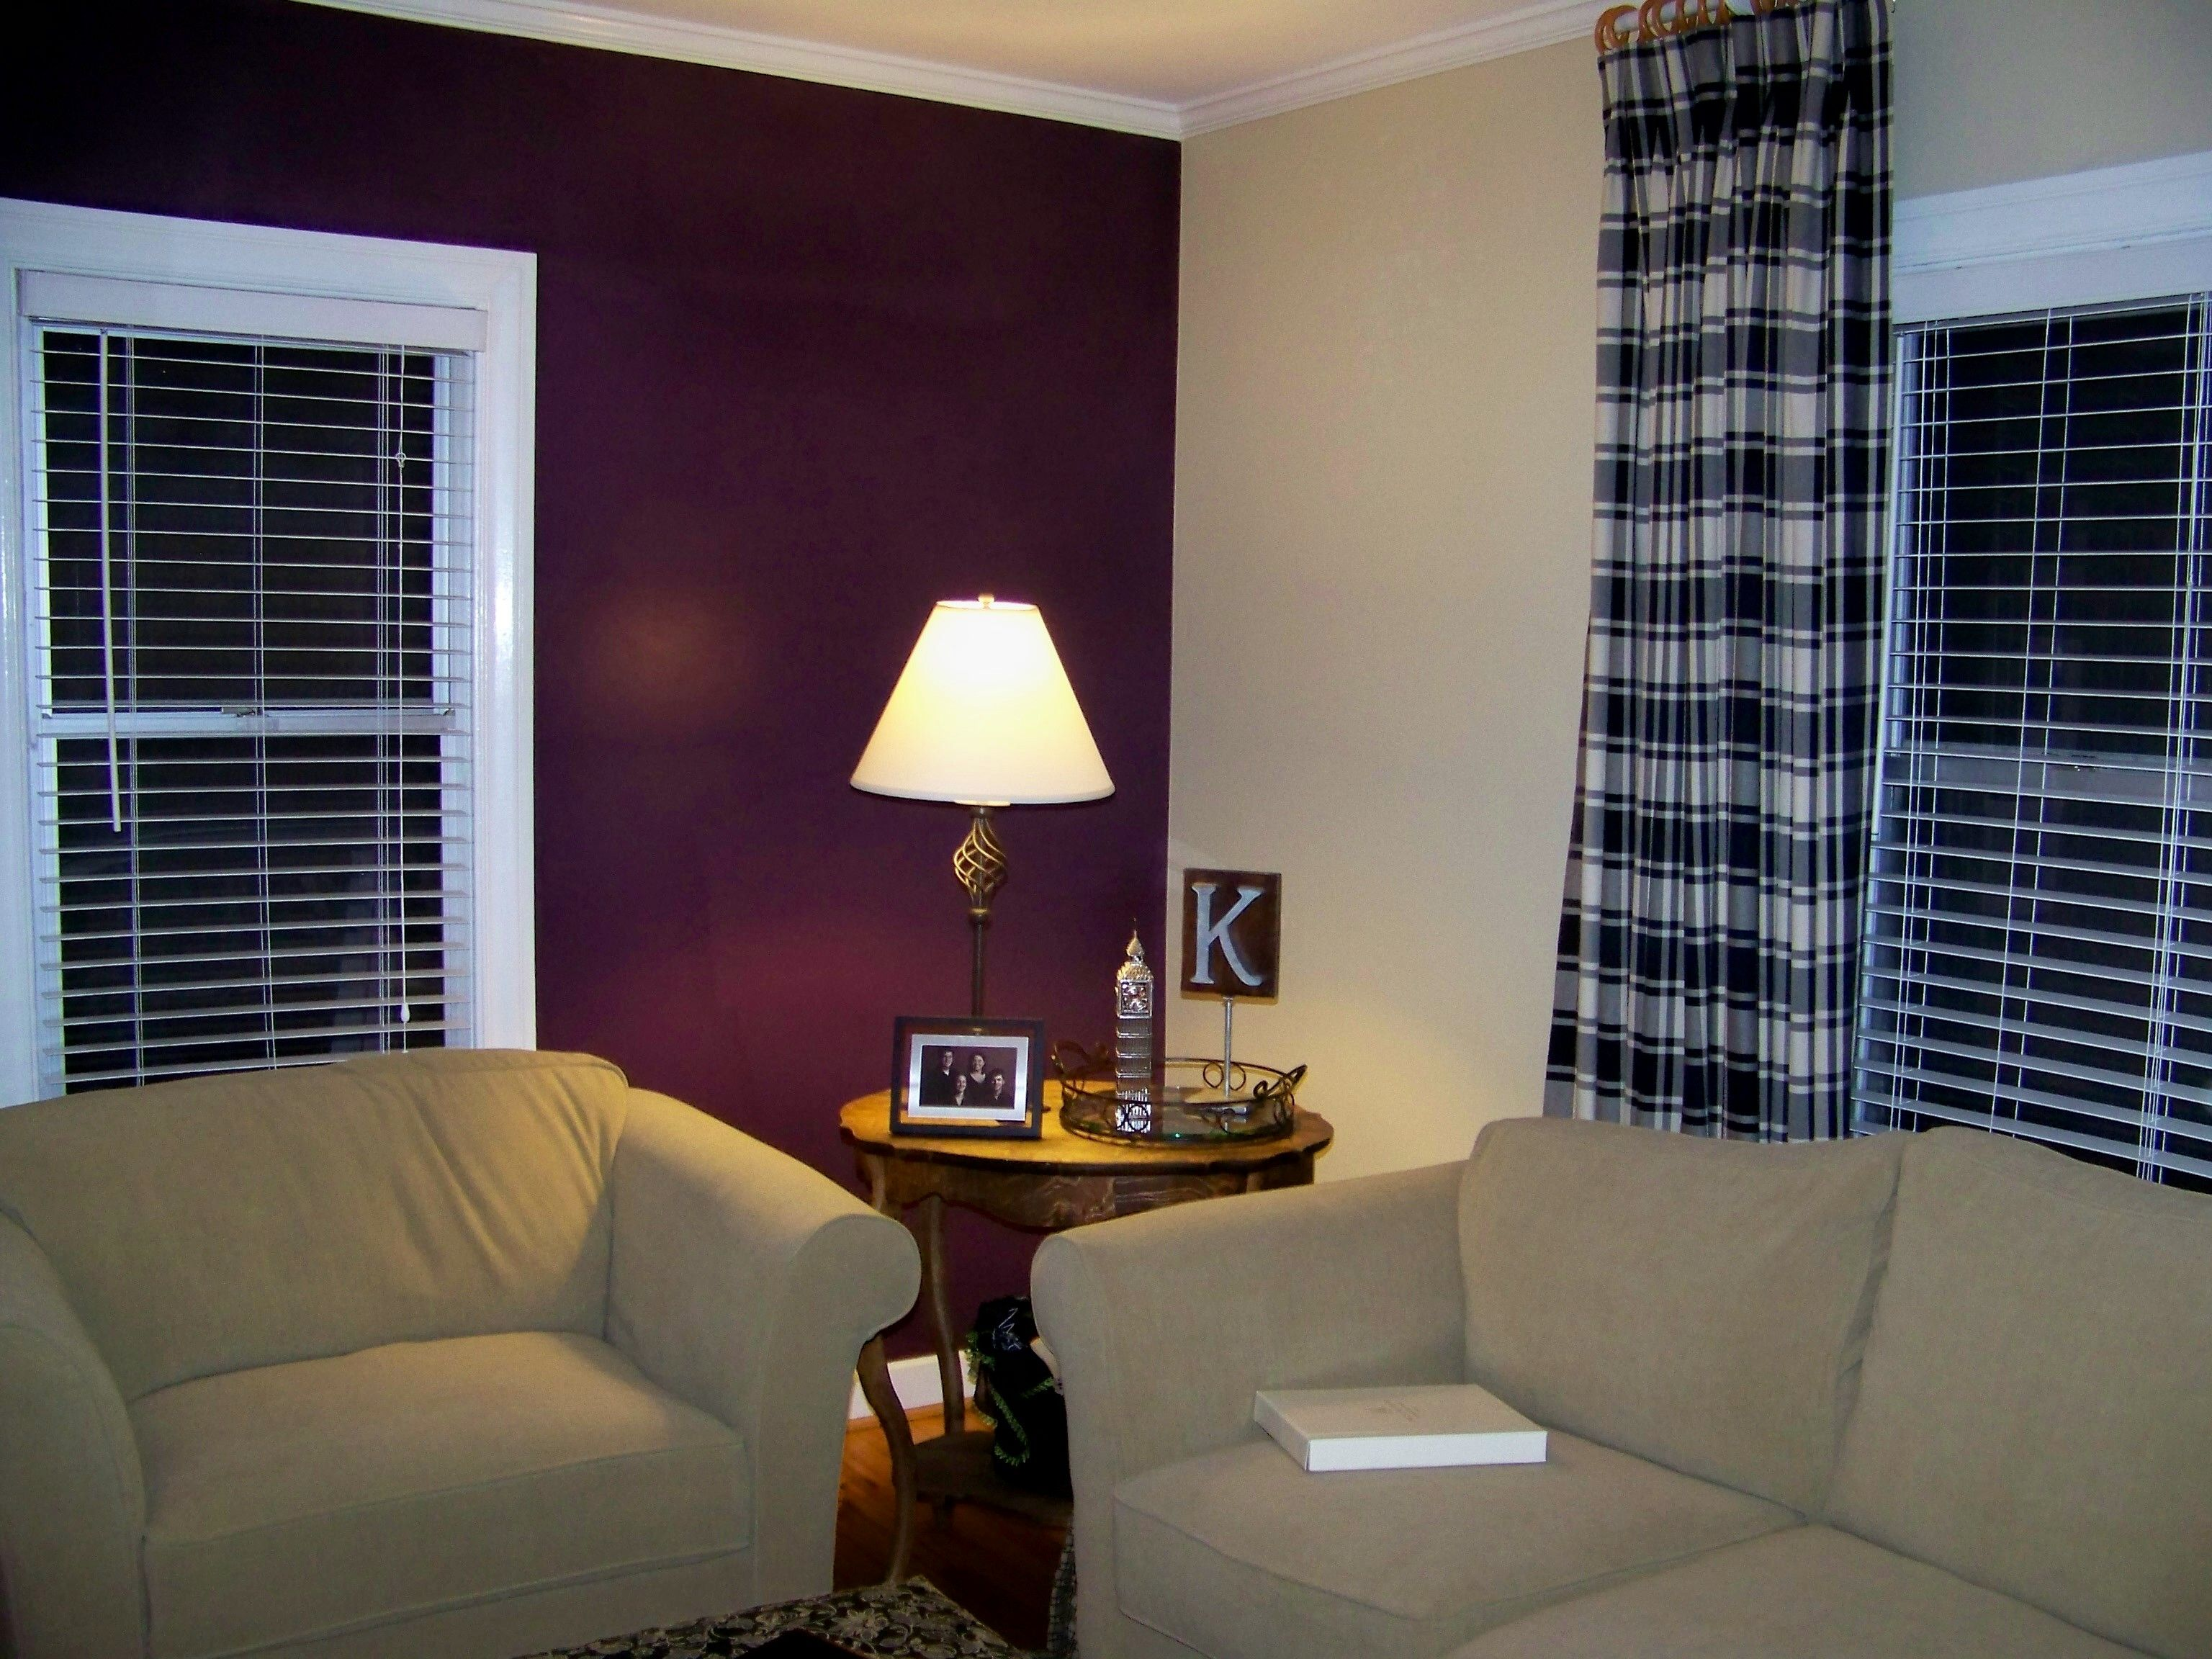 Good Accent Wall Colors | Accent Wall Ideas: 3 Paint Ideas ...